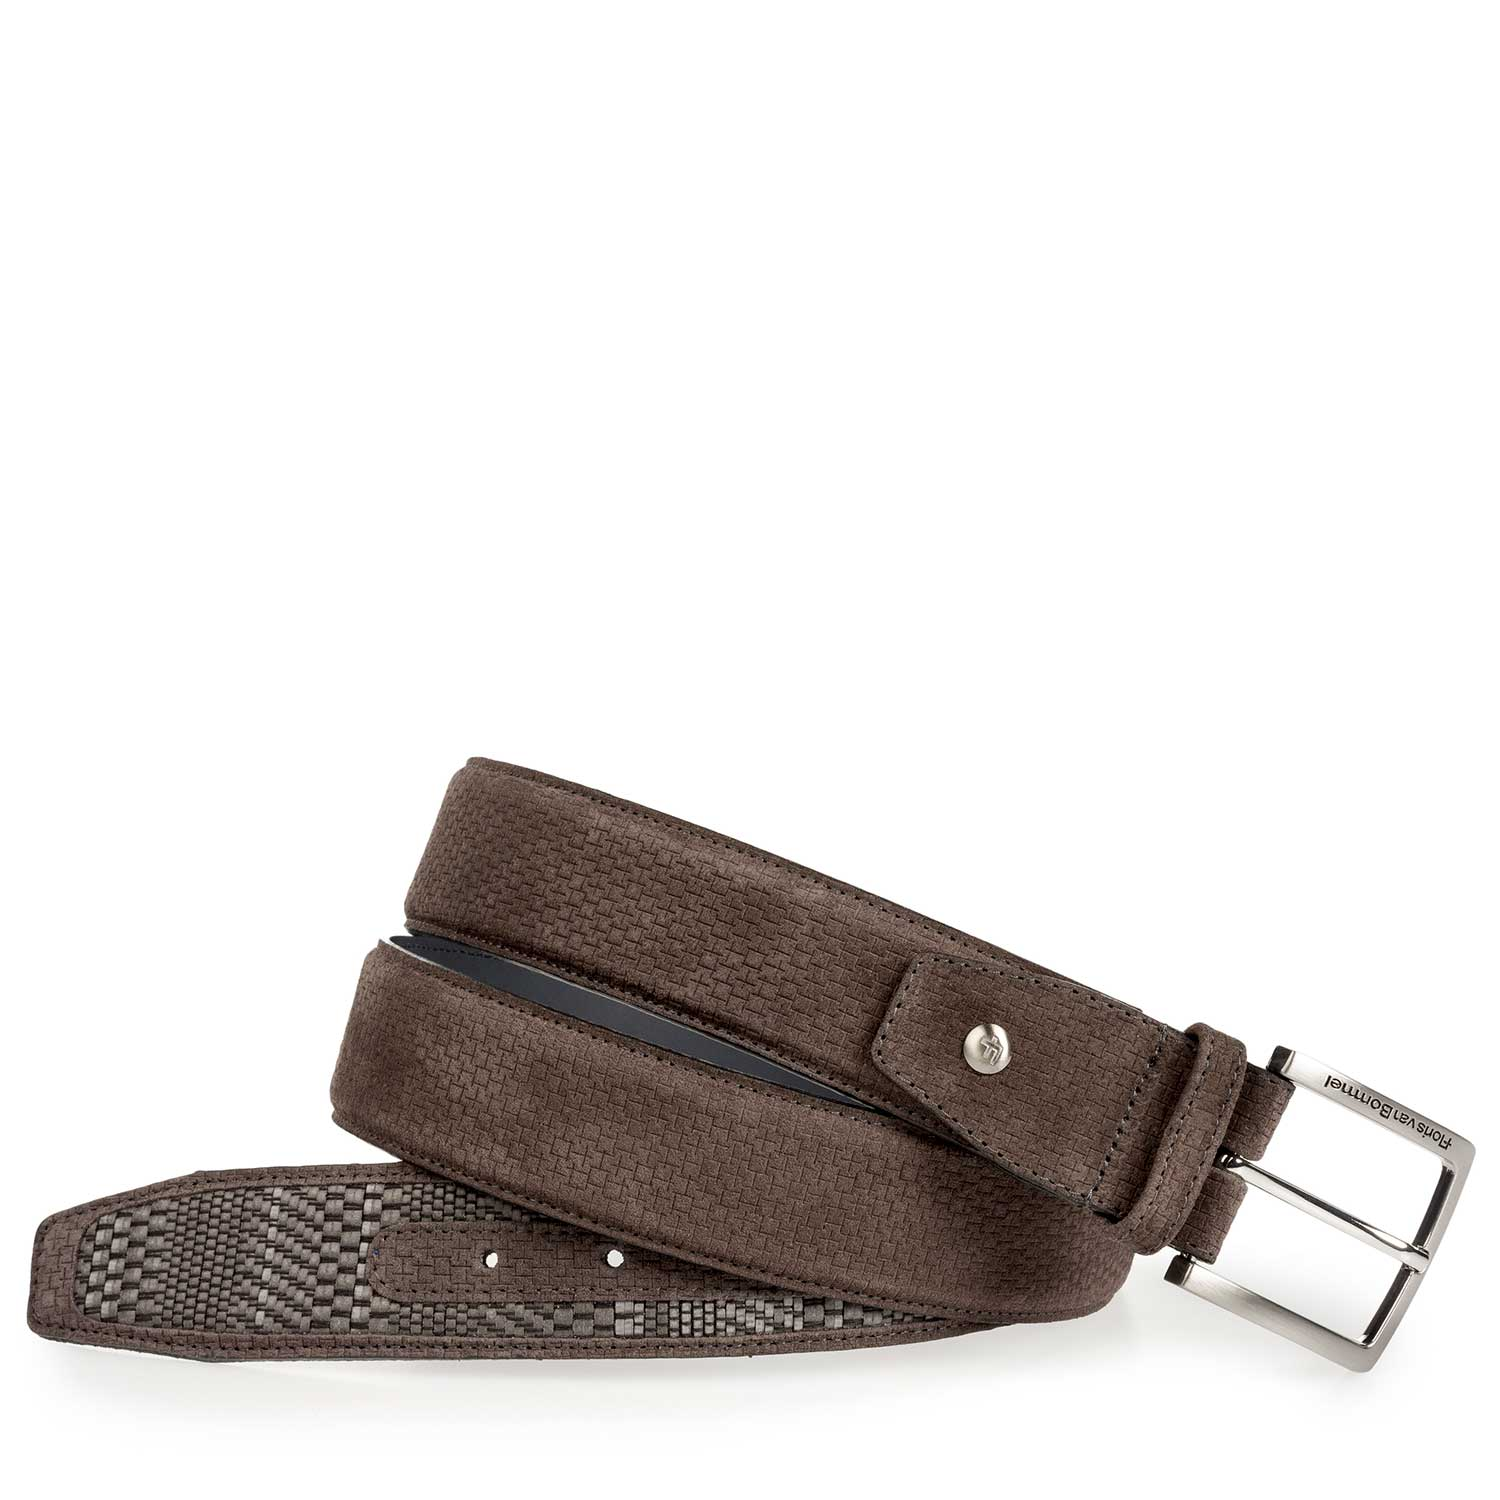 75159/13 - Grey suede leather belt with a braided pattern